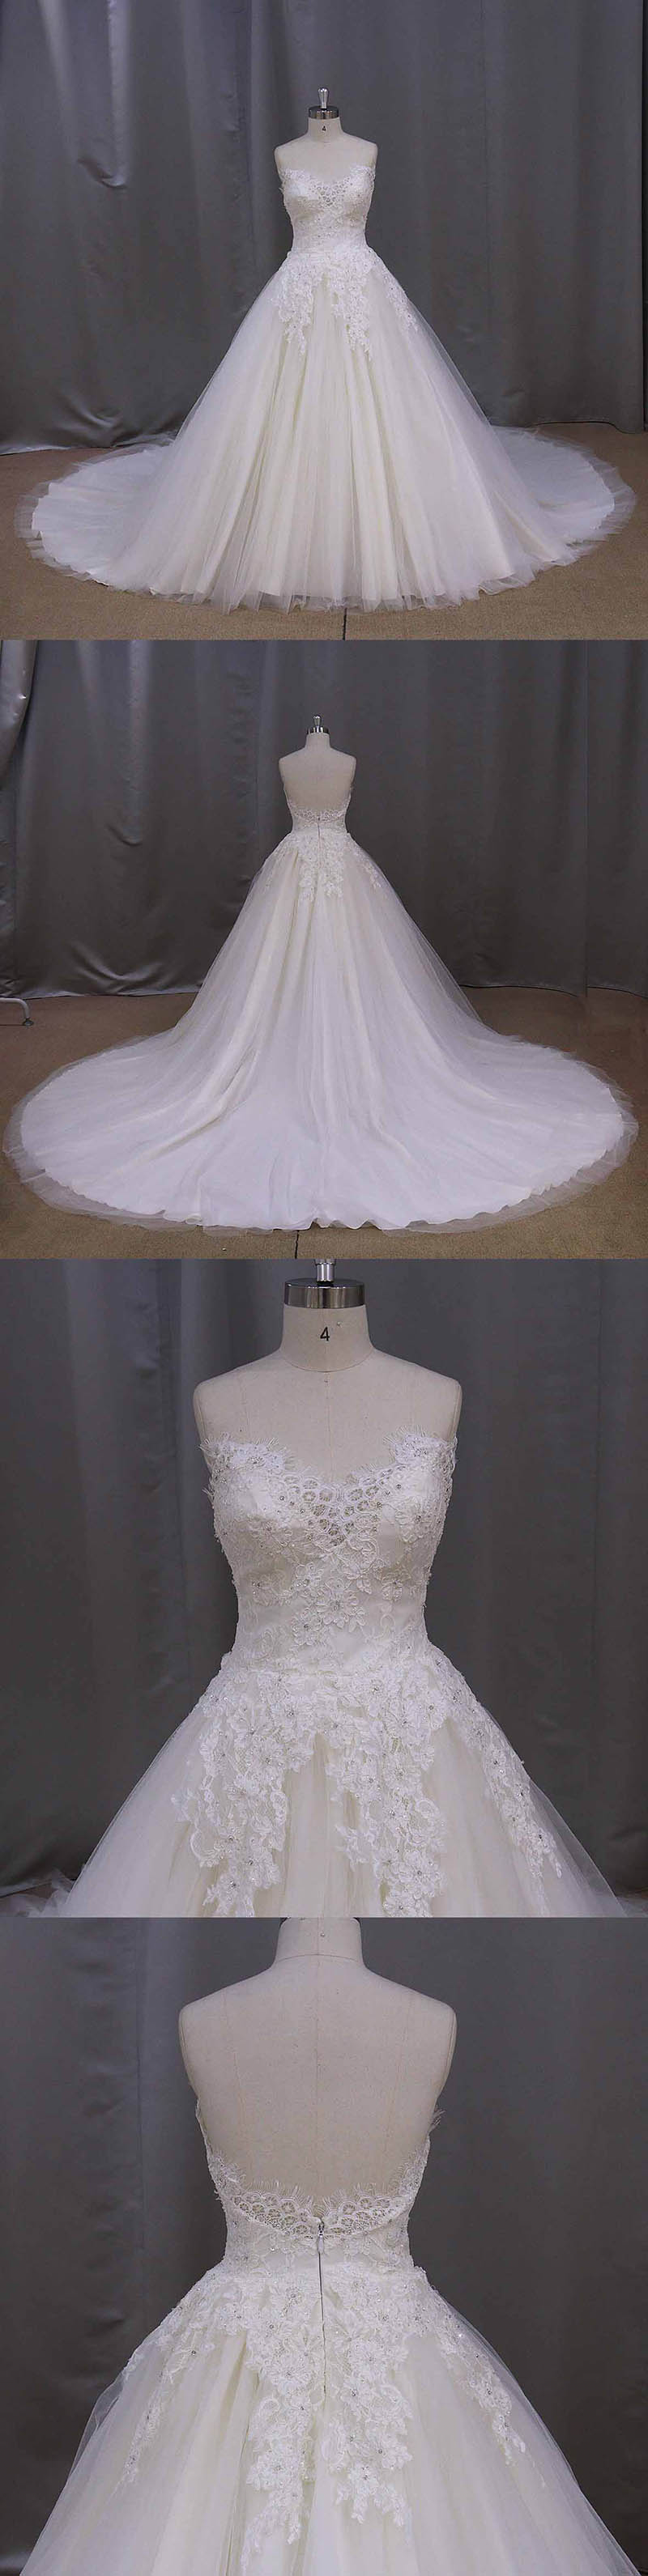 Modest Lace Wedding Dress Bridal Dress Gown